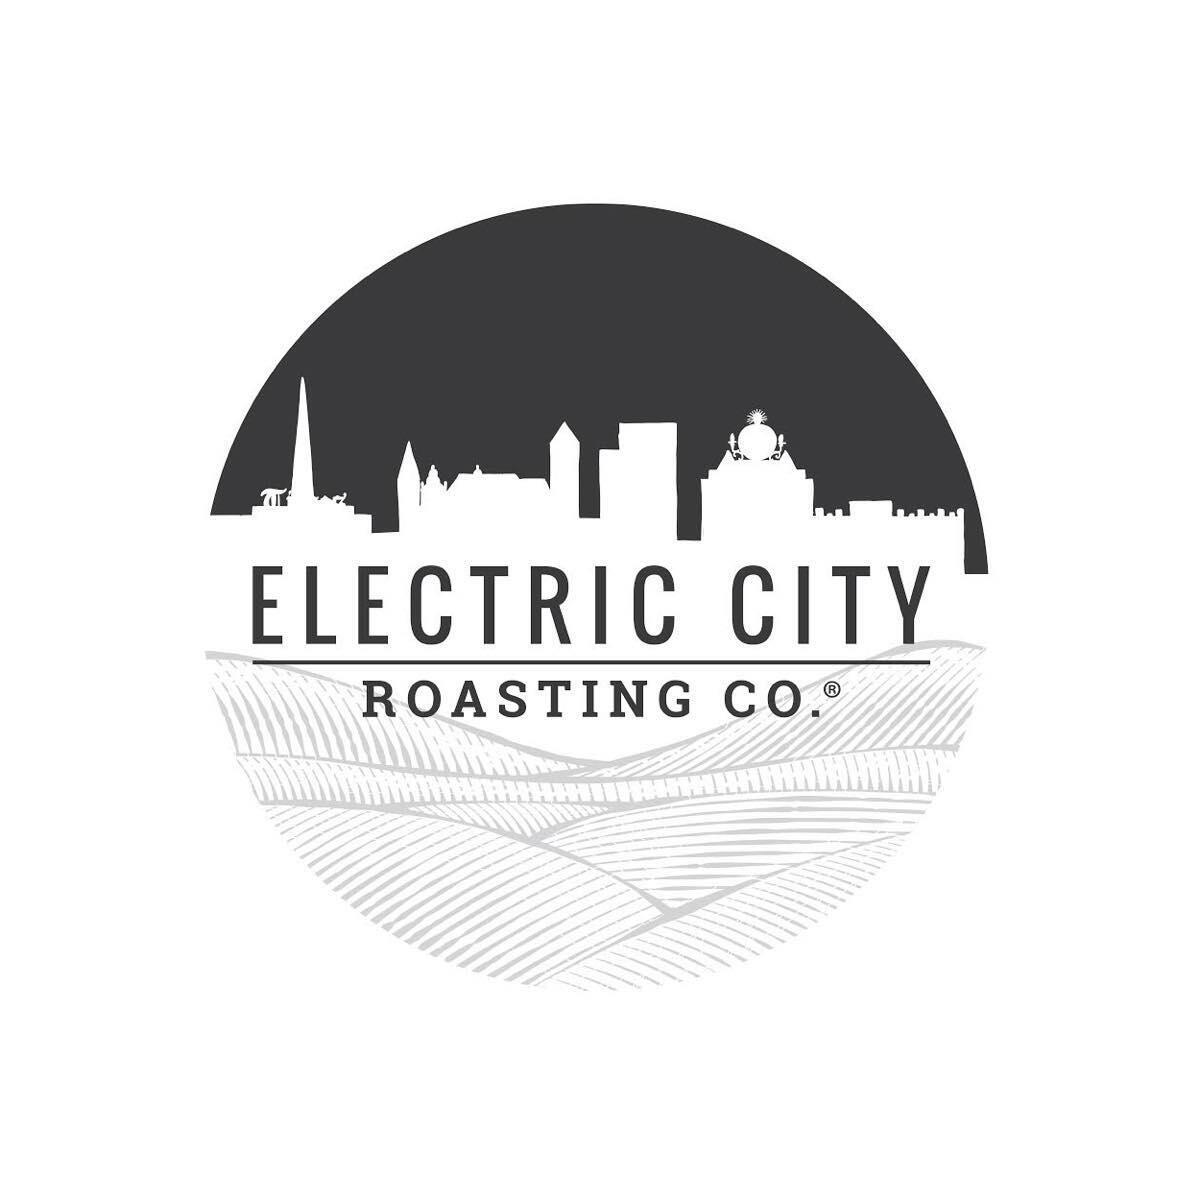 Electric City Roasting